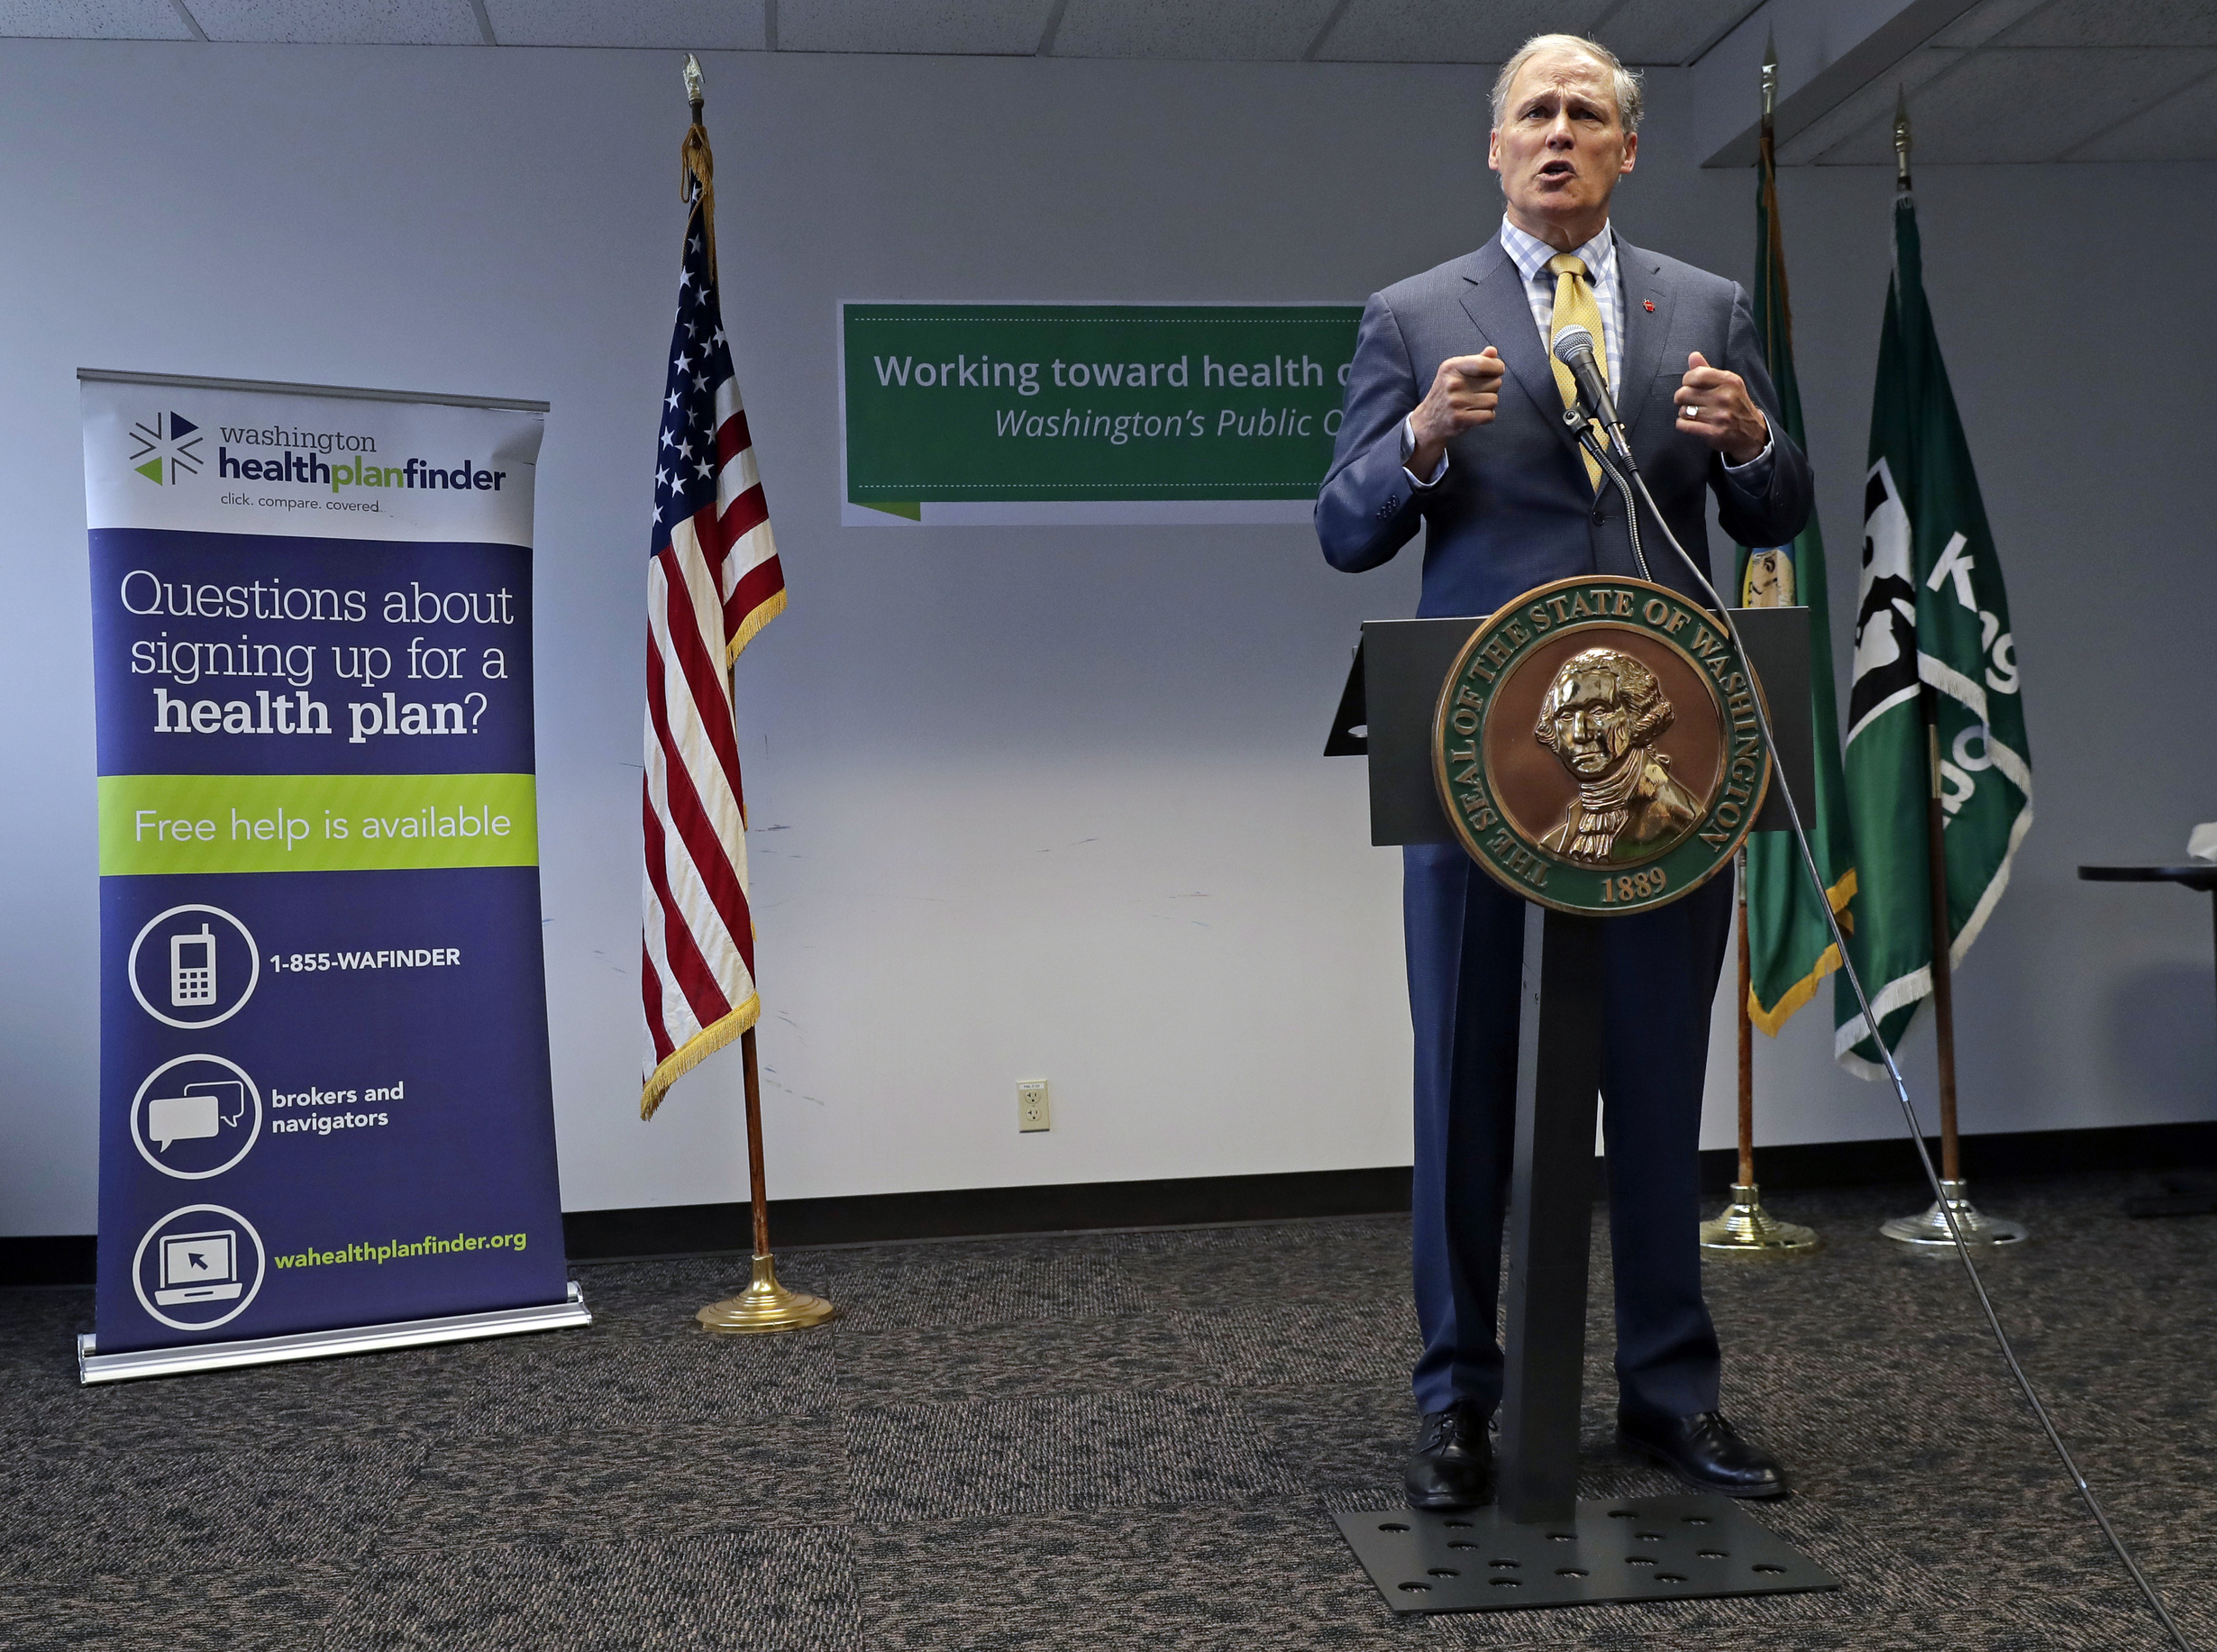 FILE - In this Tuesday, Jan. 8, 2019, file photo, Washington Gov. Jay Inslee answers questions from reporters at a news conference in Seattle. Gov. Inslee proposed a public health insurance option for people who are not covered by Medicaid or private employers and have trouble affording policies on the private market. Democrats in several other states are considering ways that people who are uninsured but make too much to qualify for Medicaid or other subsidized coverage can buy Medicaid policies. (AP Photo/Ted S. Warren, File)